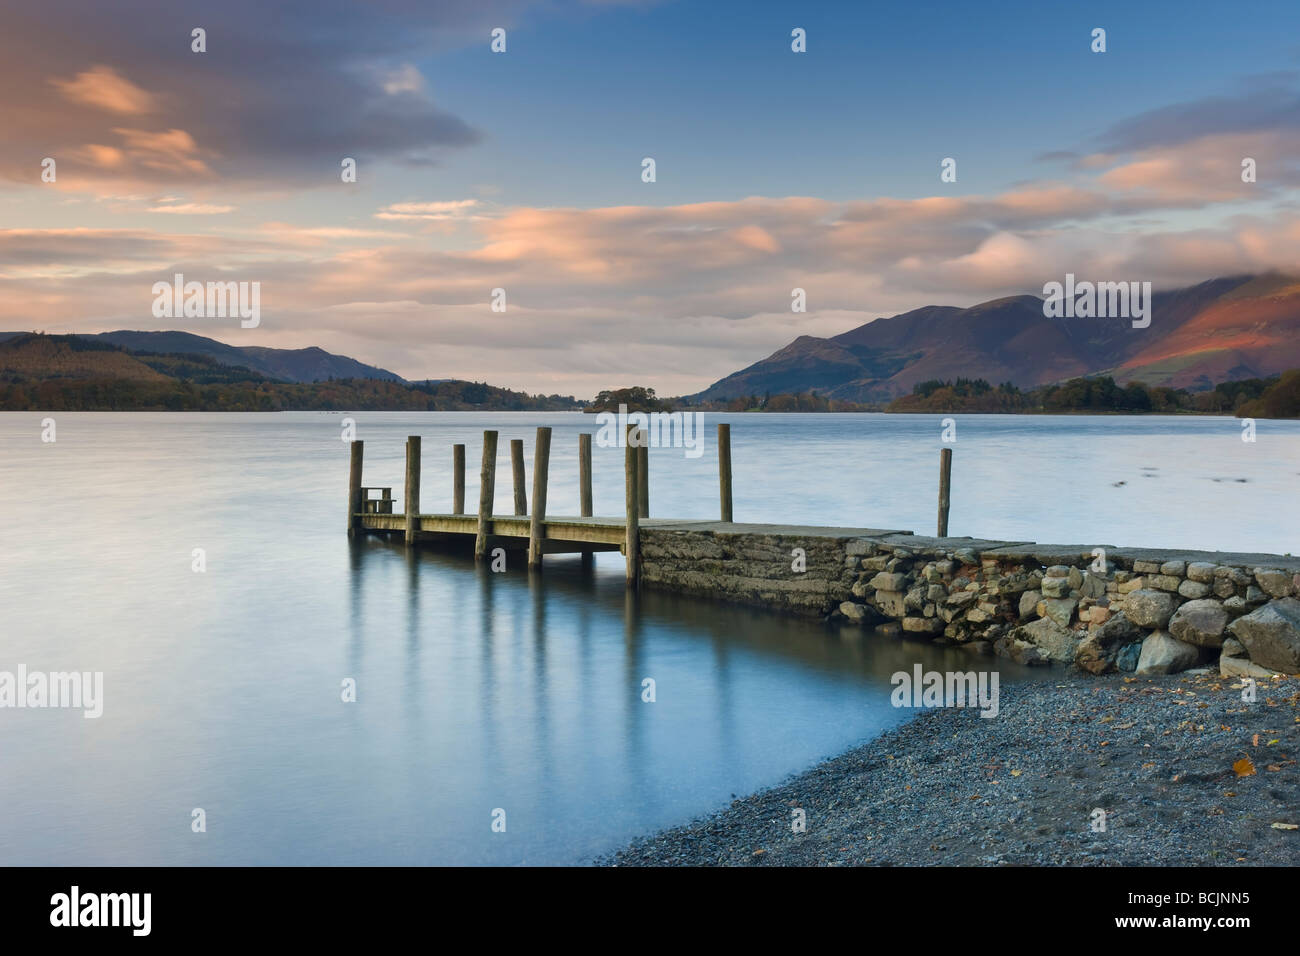 Derwent Water, Lake District National Park, Cumbria, England, UK  - View along wooden jetty at Barrow Bay landing - Stock Image